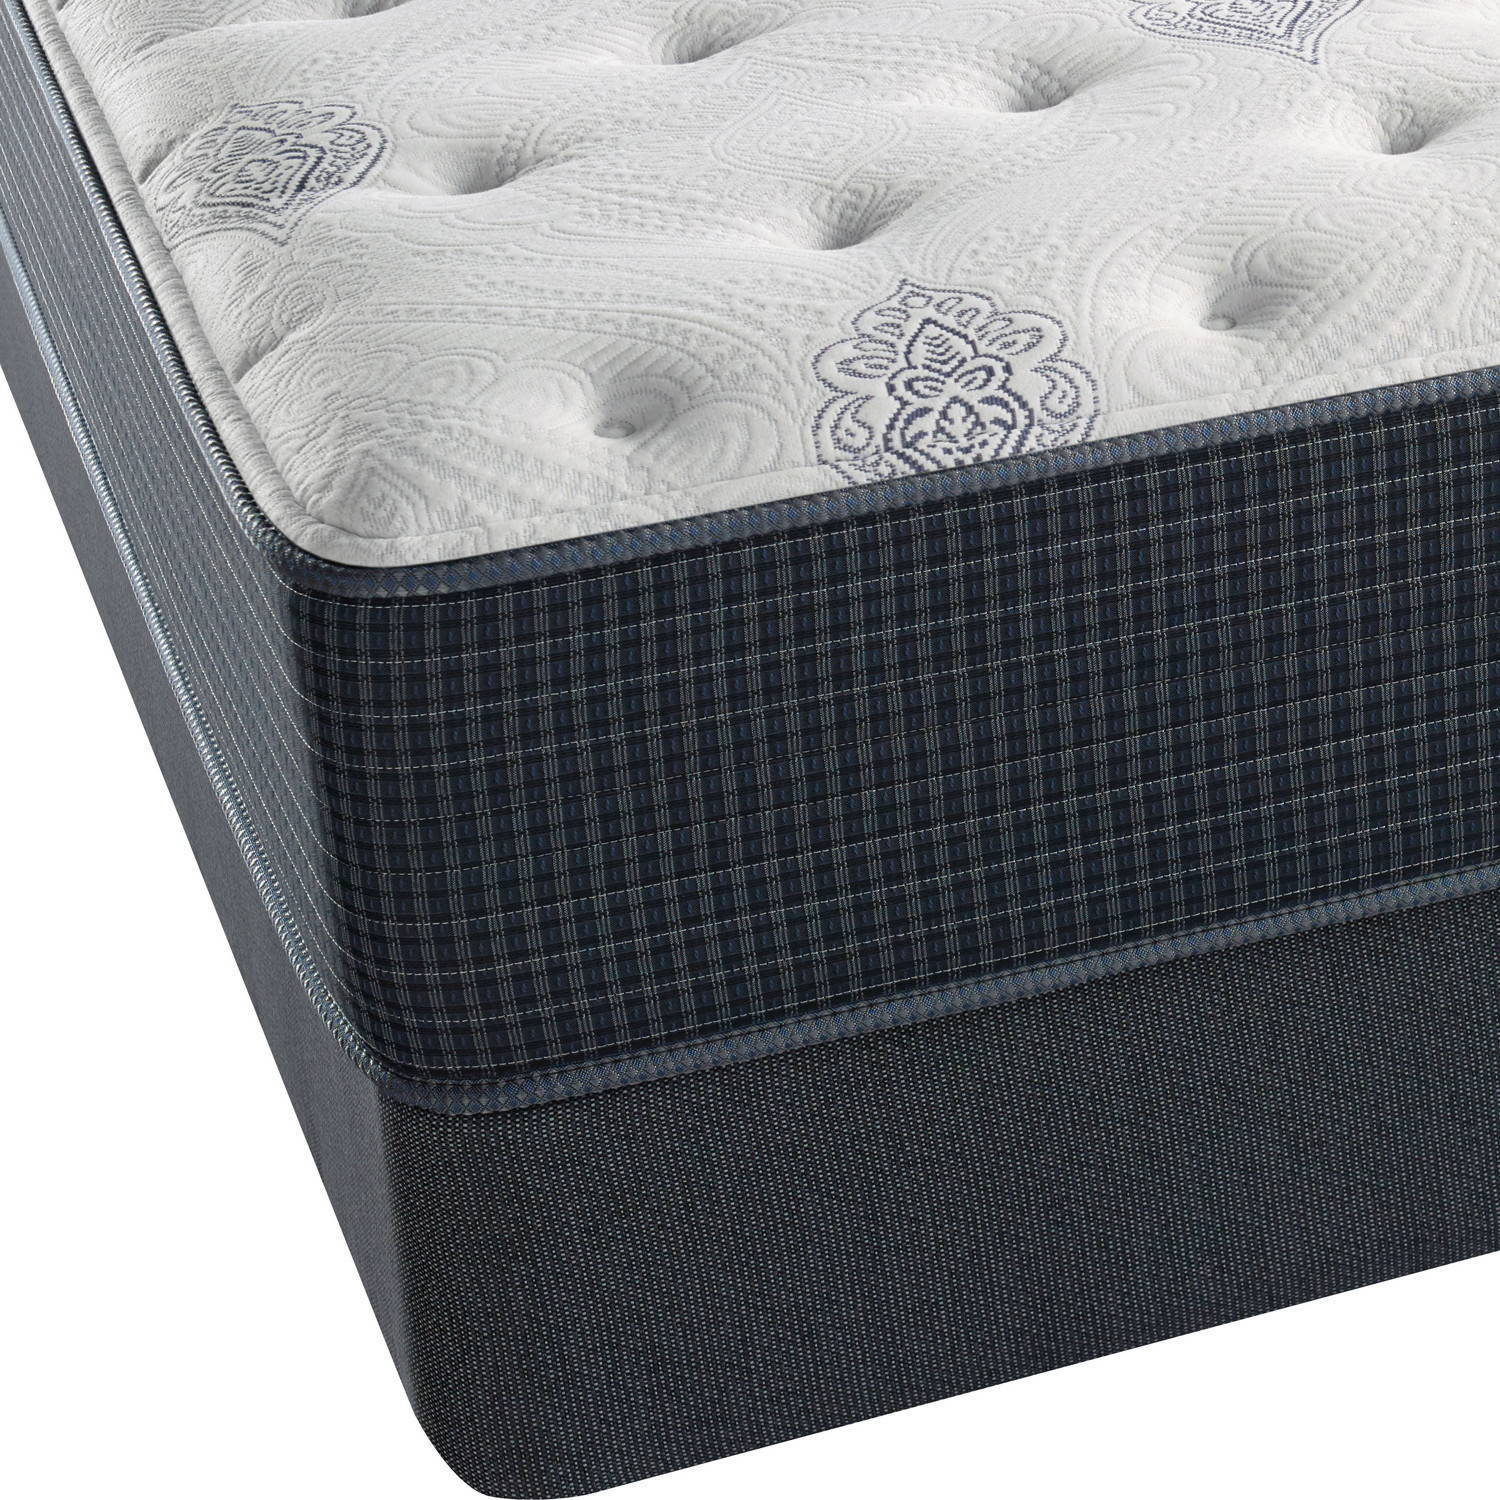 Beautyrest Silver Brewer Plush Mattress- In Home White-Glove Delivery Included